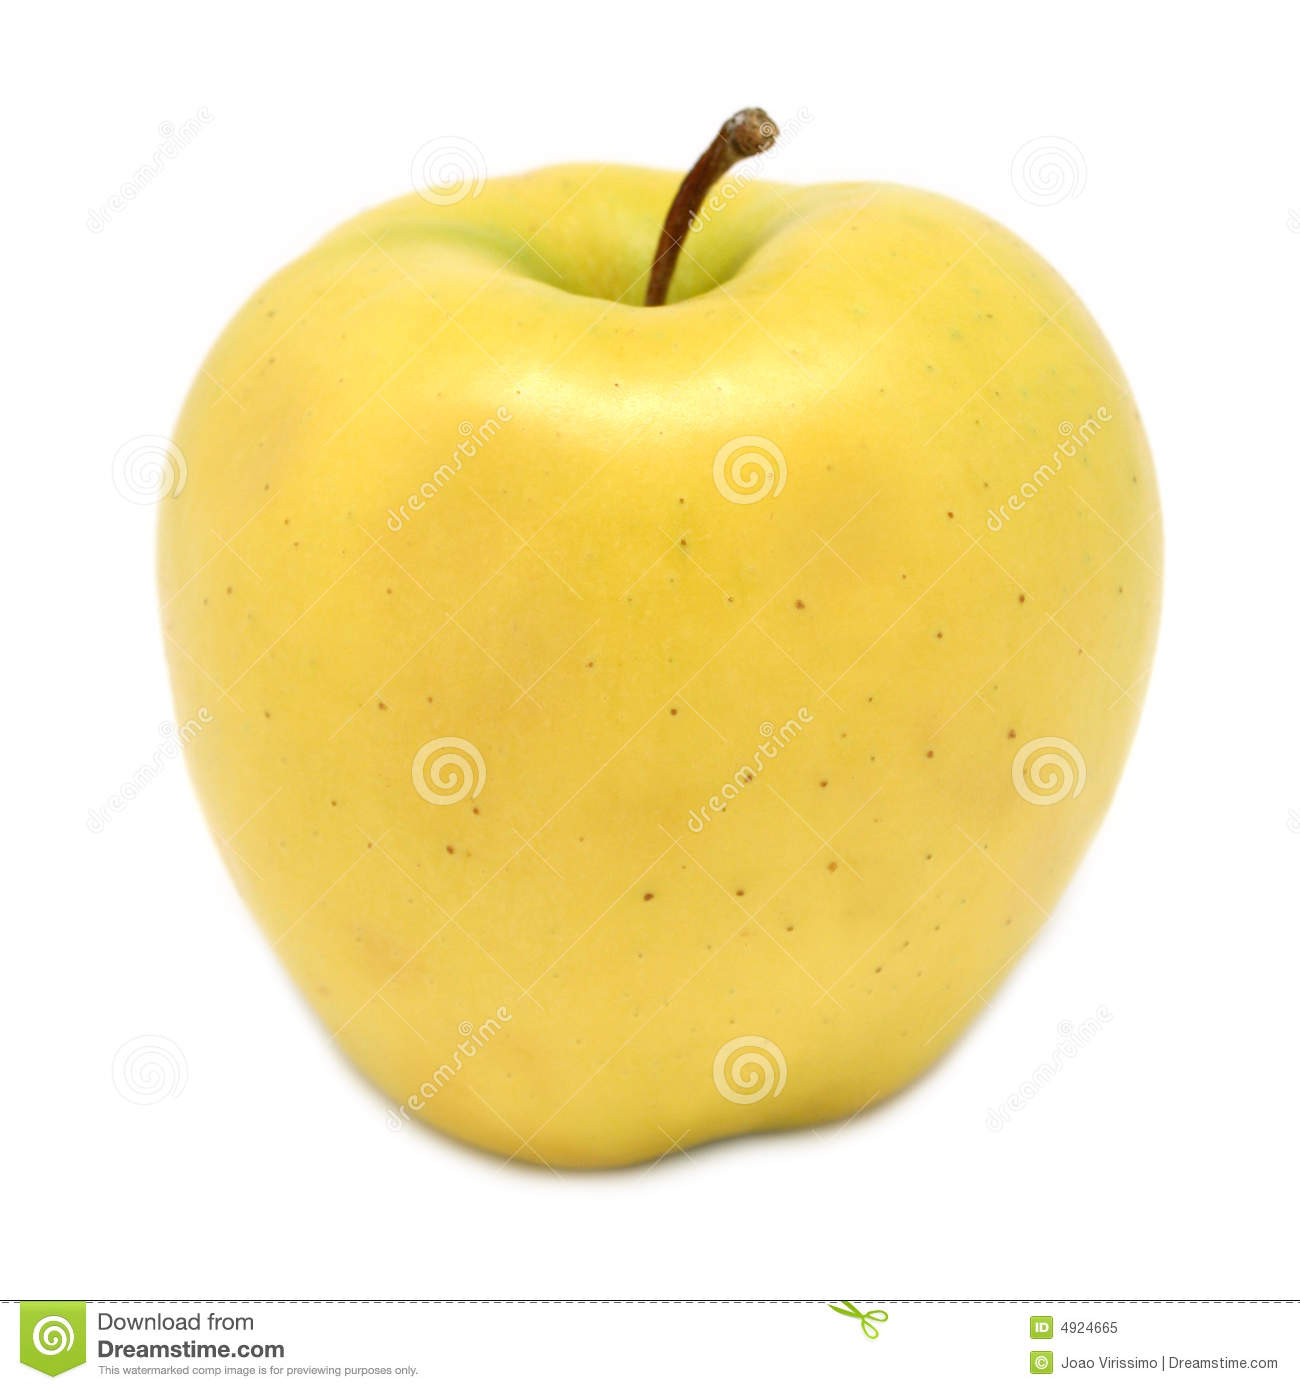 Golden Delicious Apple Royalty Free Stock Photo.